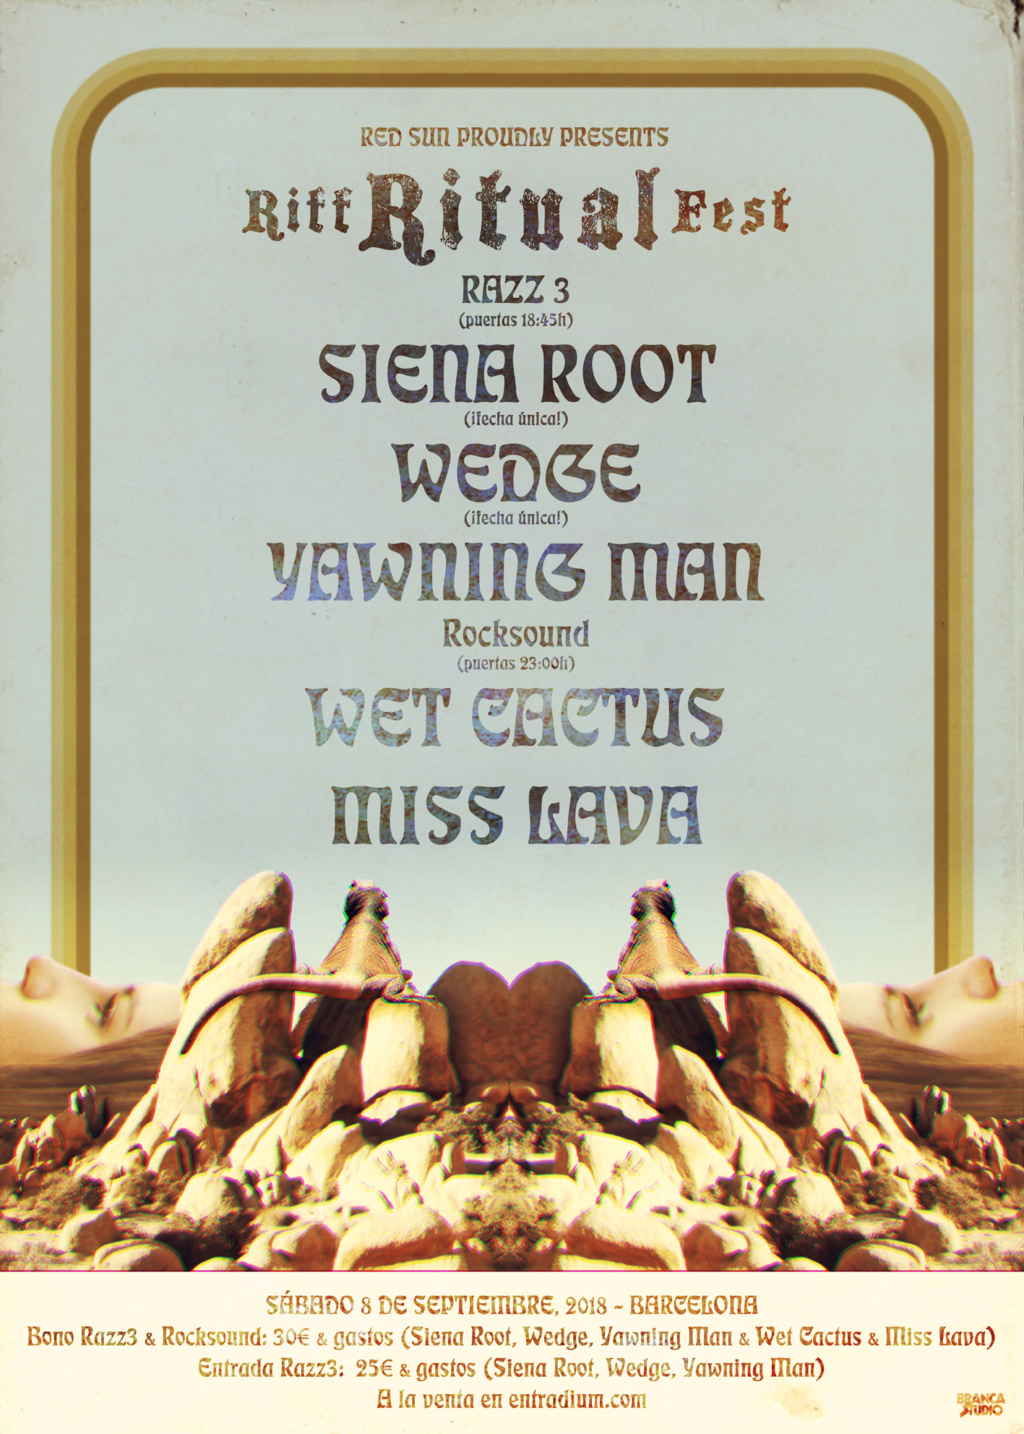 RIFF RITUAL FEST Vol.4 / 8 sept - Siena Root, Wedge, Yawning Man, Wet Cactus, Miss Lava (BCN) Web11